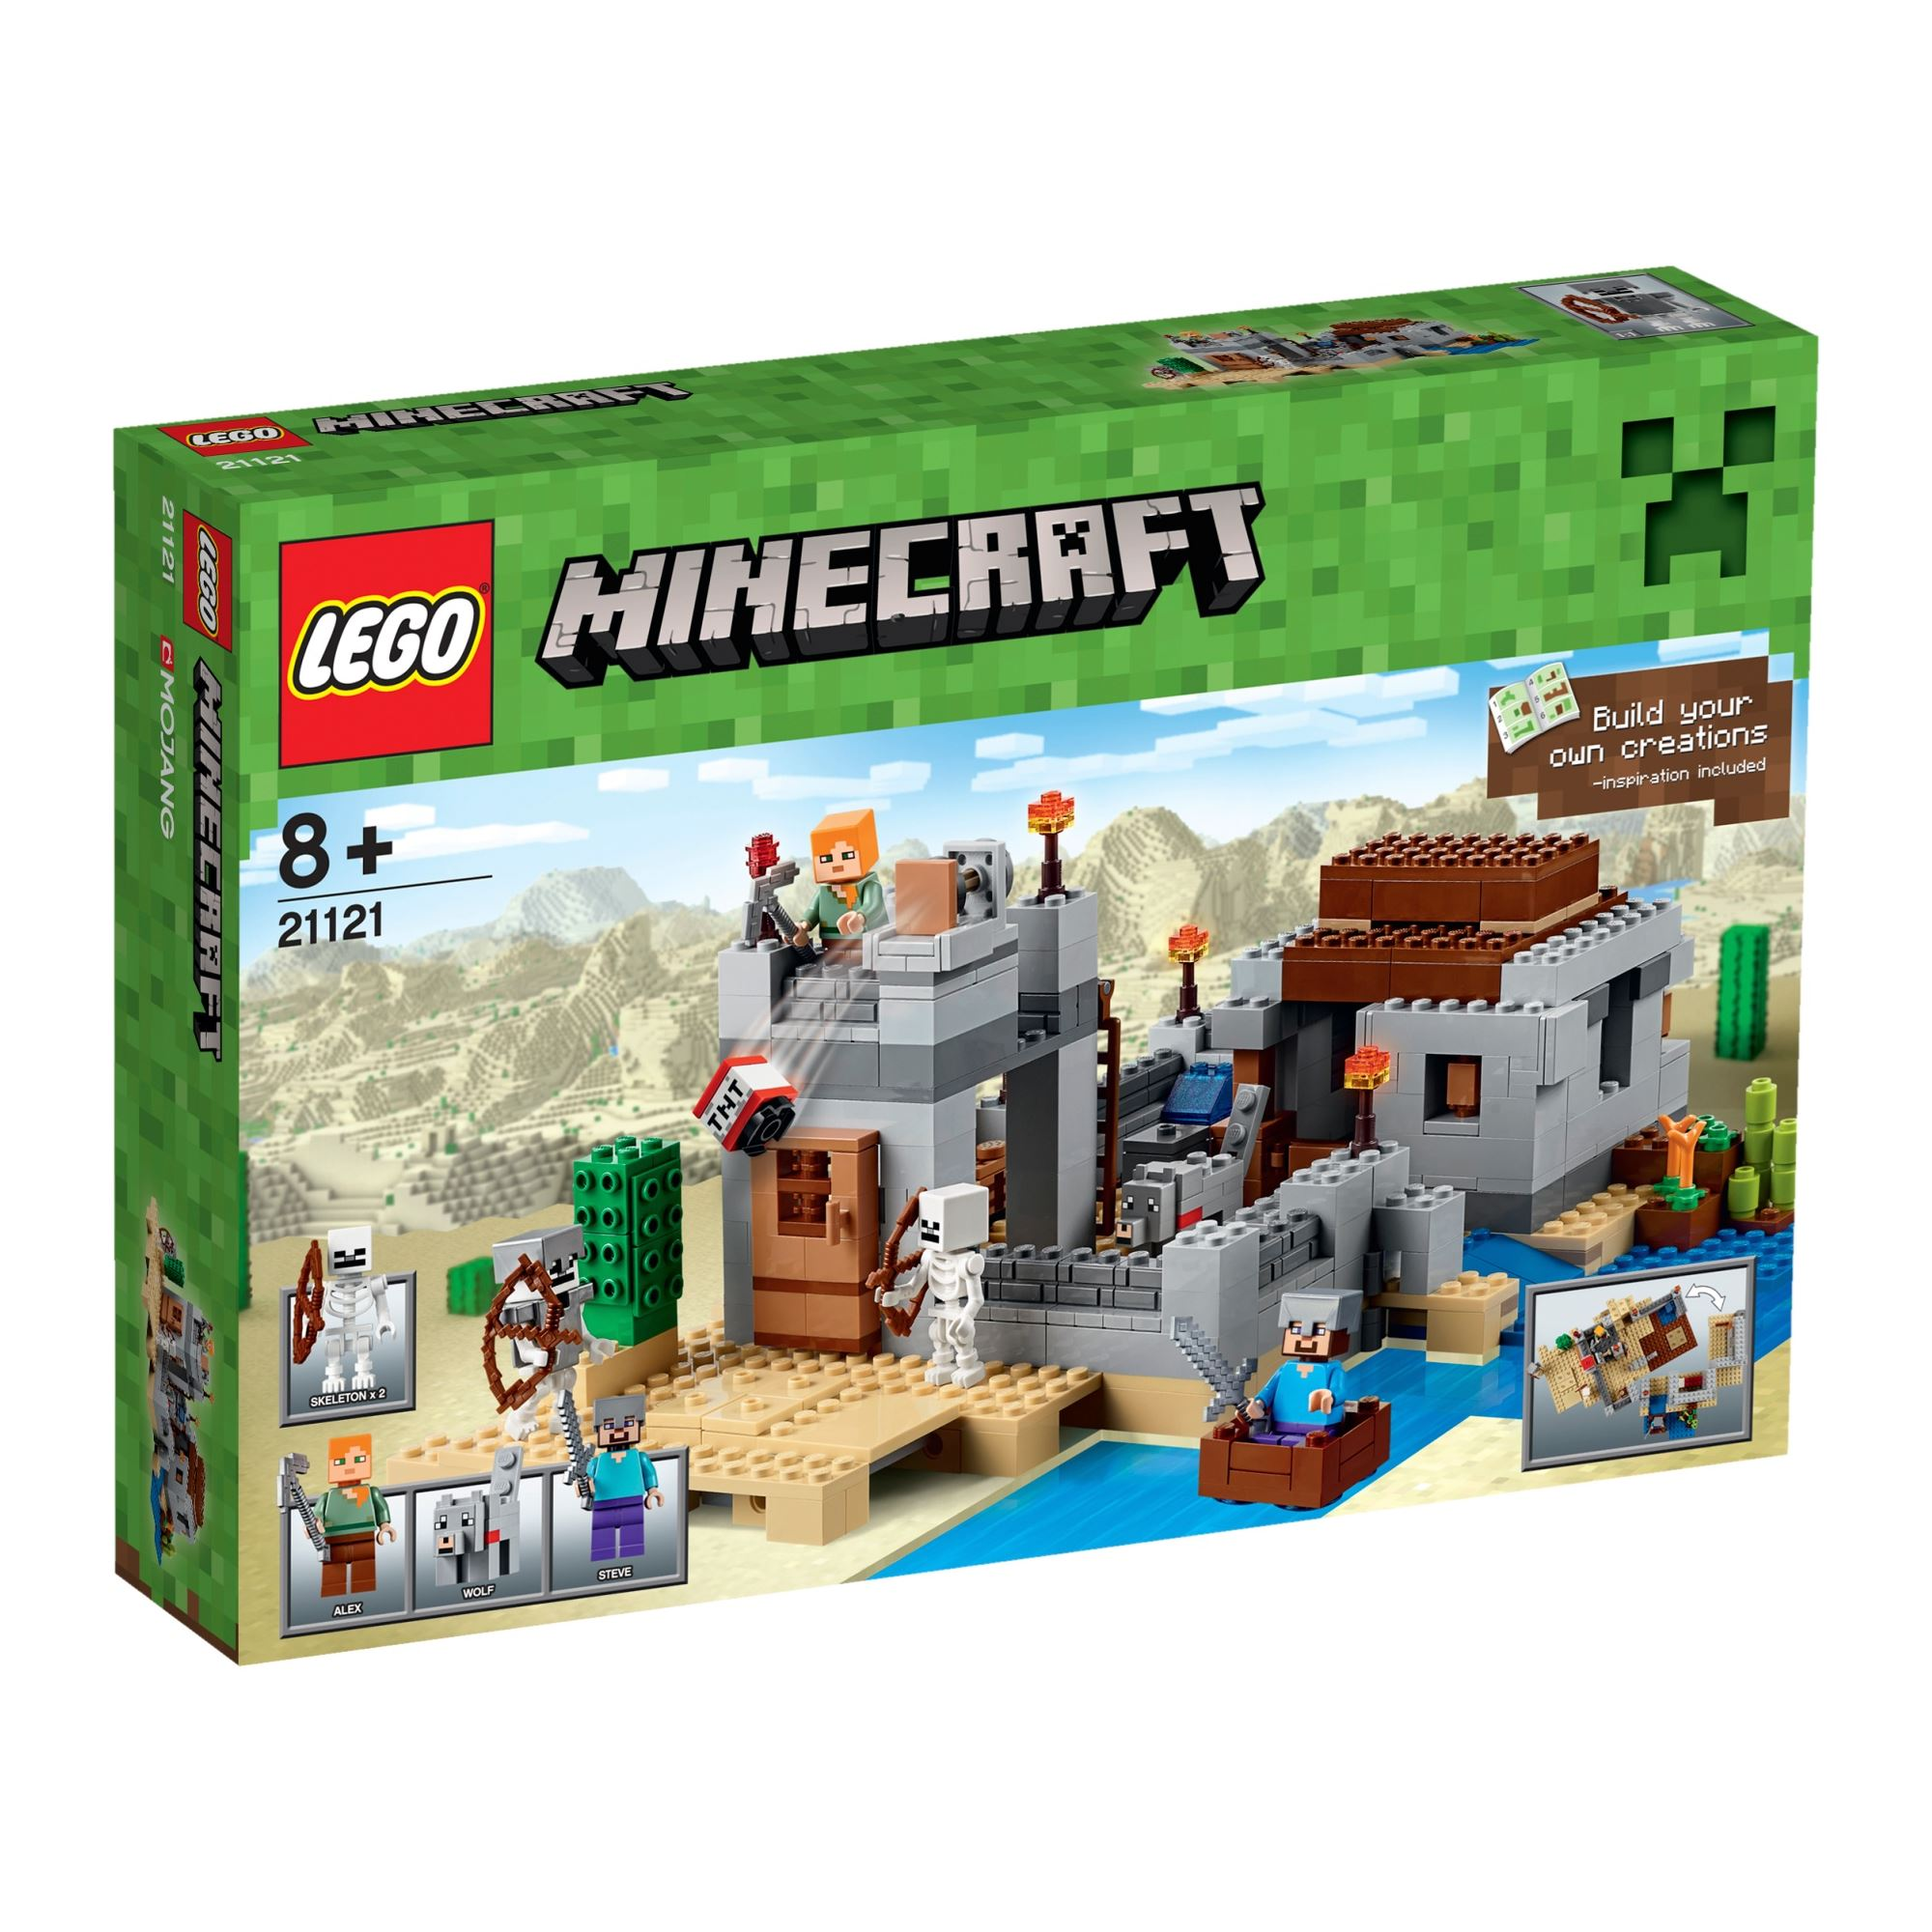 Minecraft Images Toys Image of Lego Minecraft The